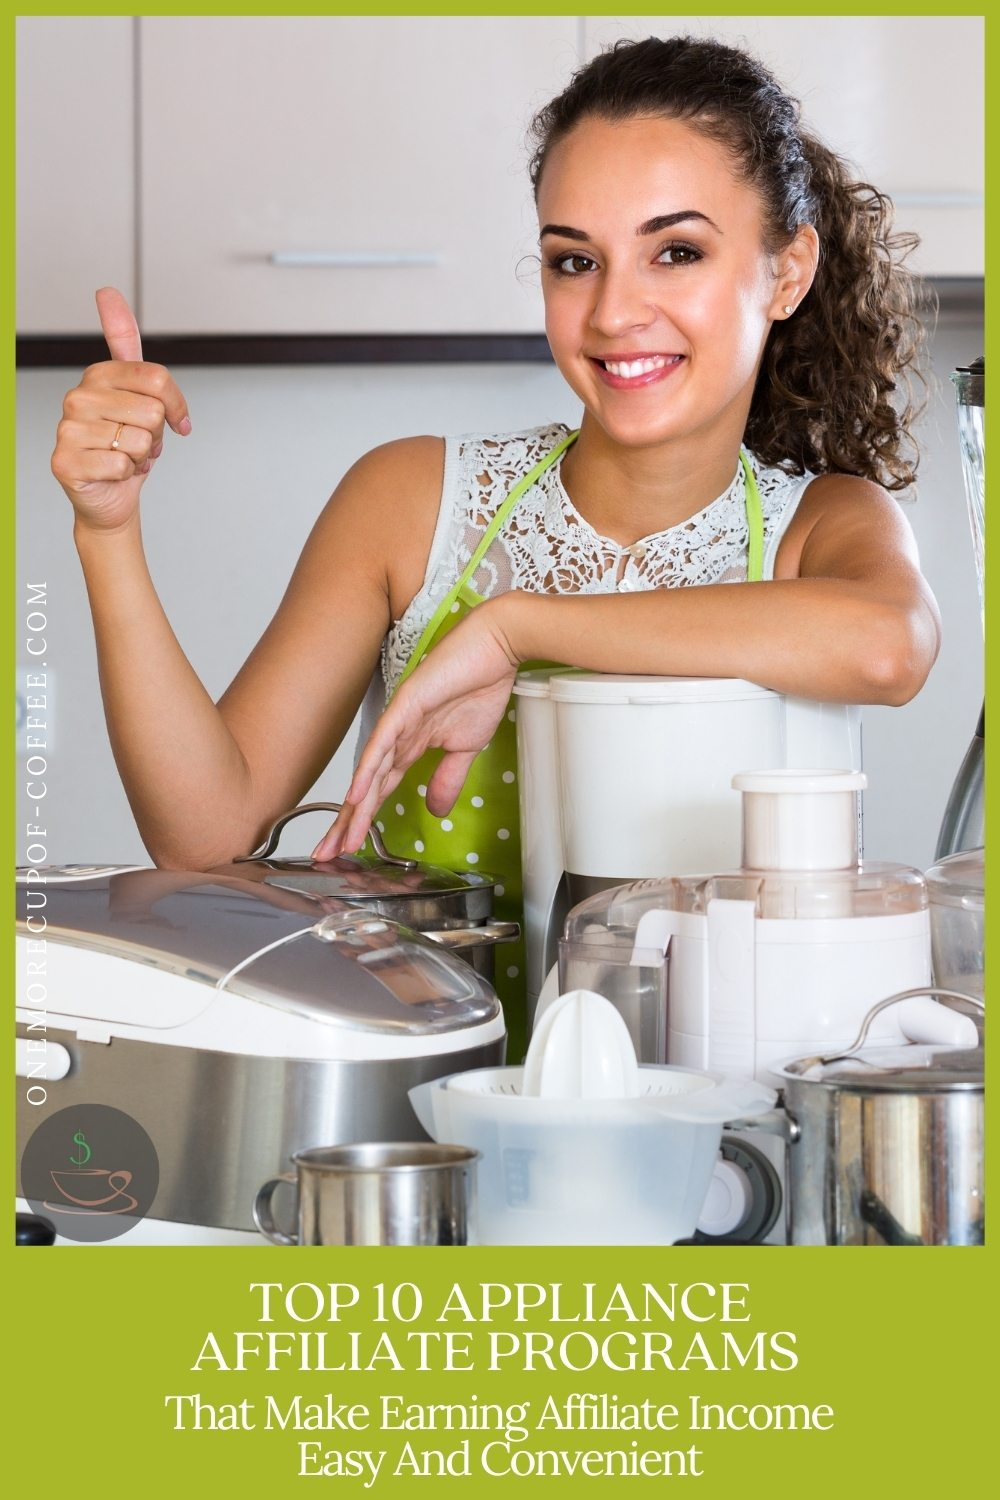 smiling woman in sleeveless top and green apron, giving a thumbs up while posing in front of different small home appliance, with text at the bottom in green banner